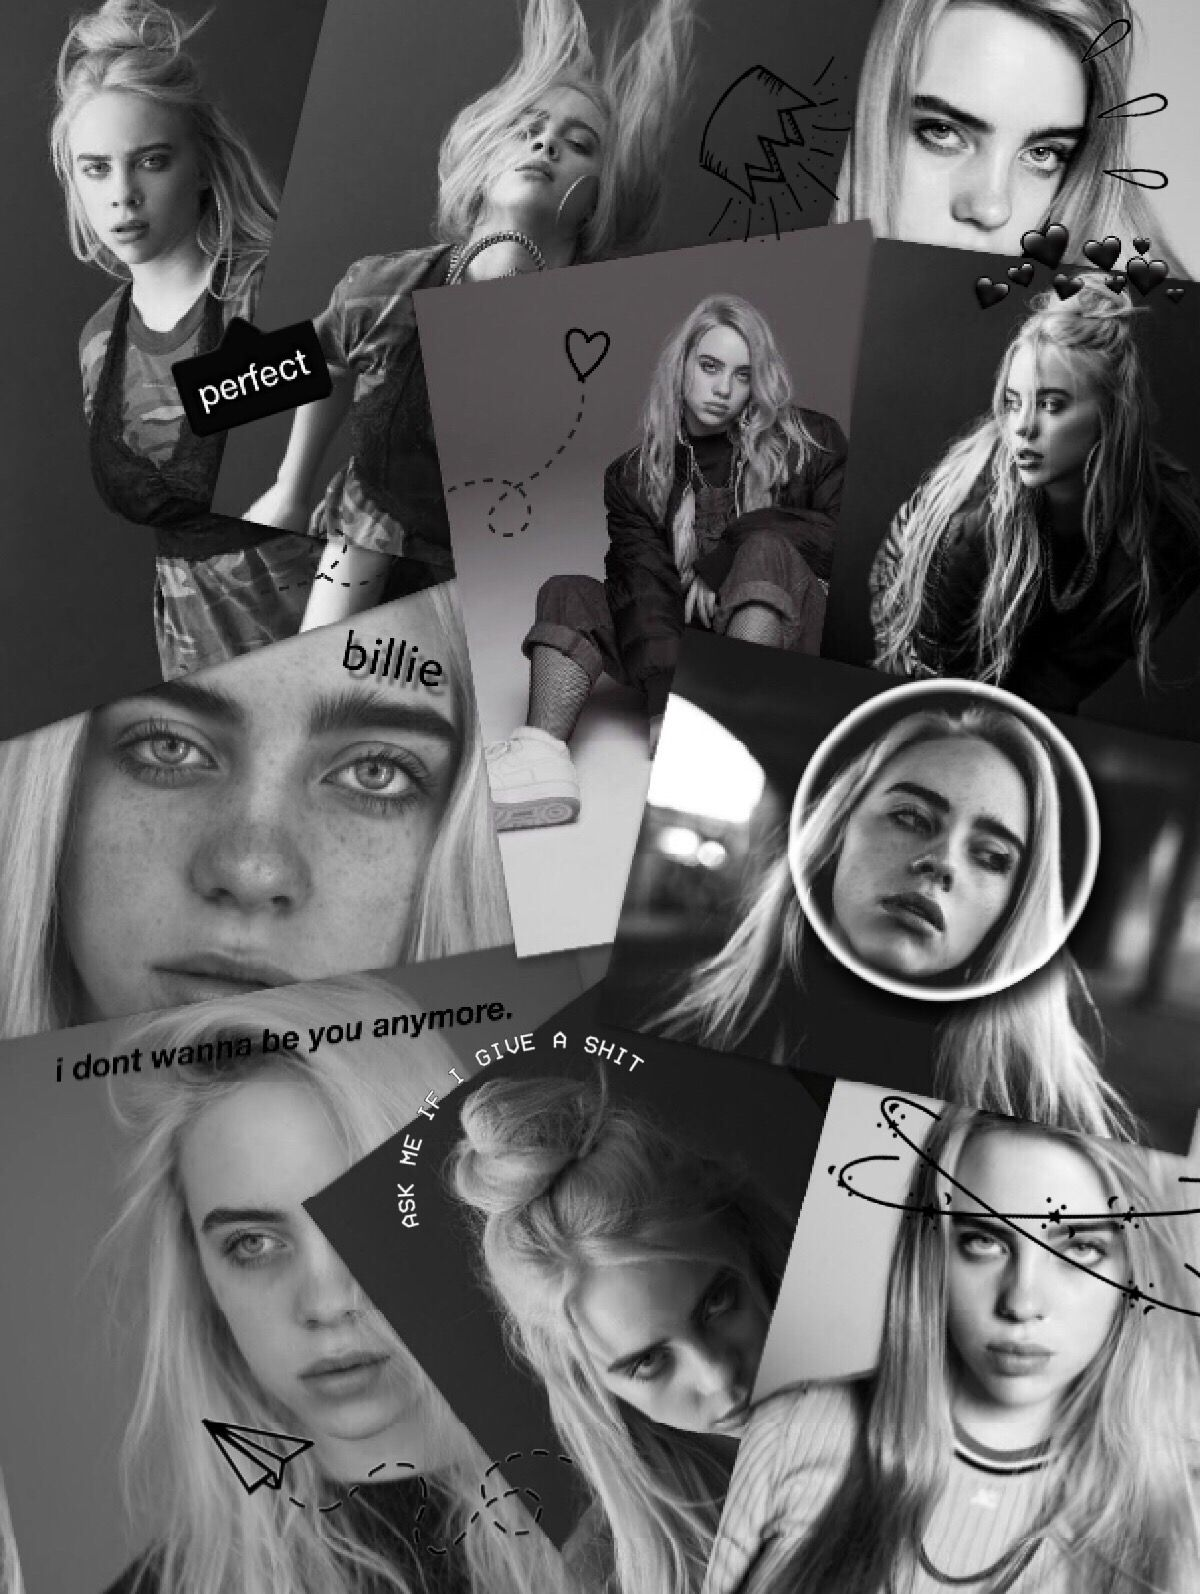 Freetoeditbillie Eilish Wallpaper Remixit With Images